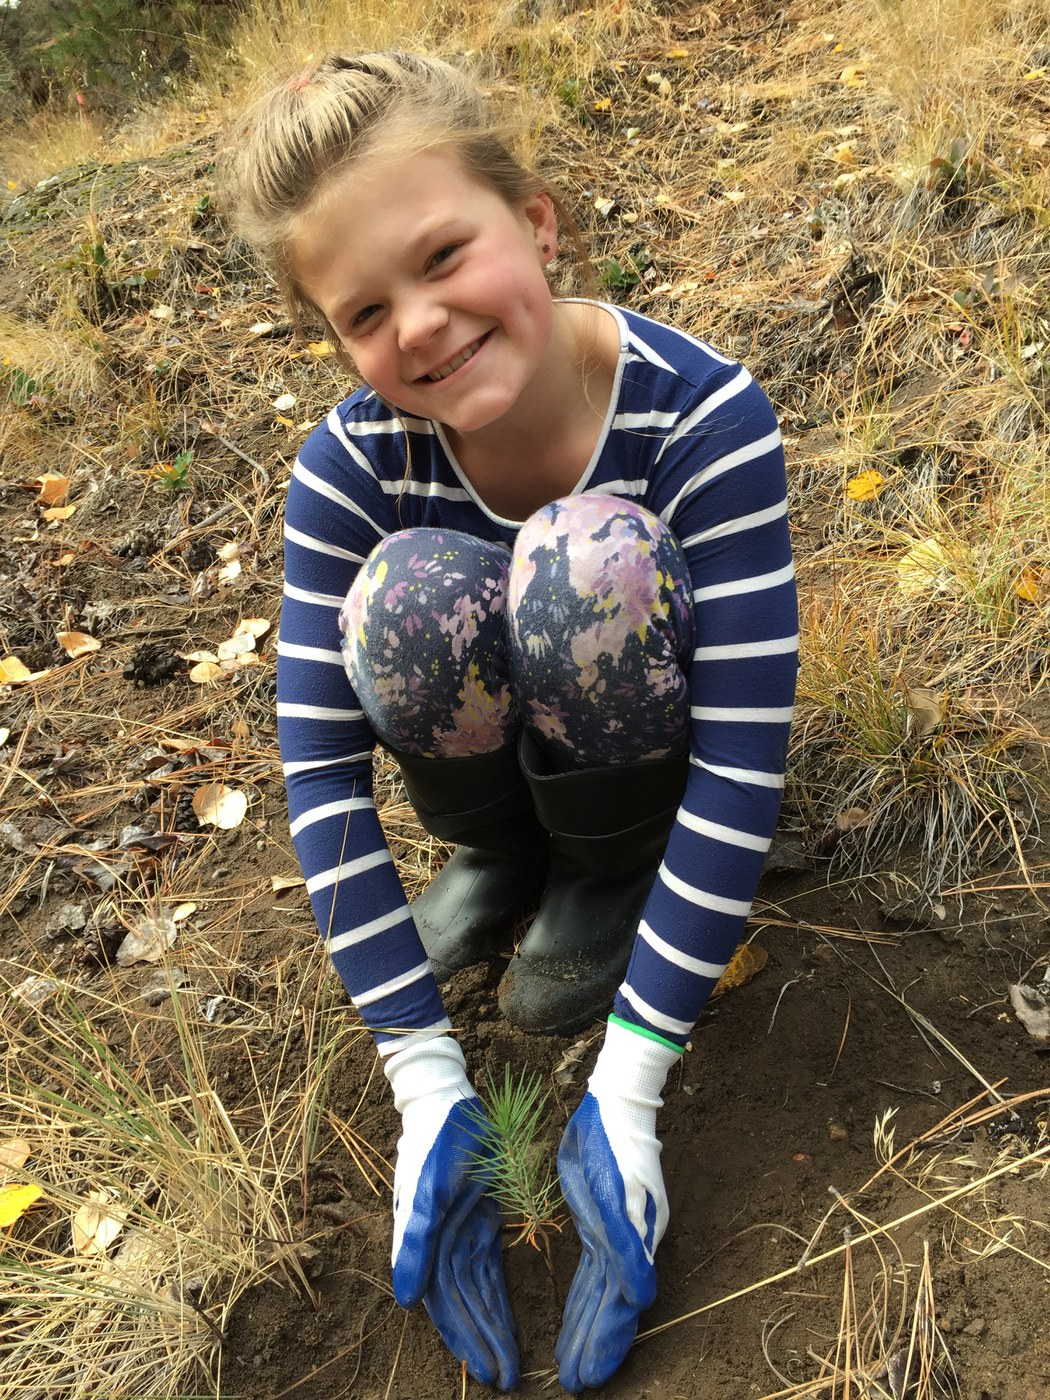 Lucy Egertson planting at Whychus Canyon. Photo: Land Trust